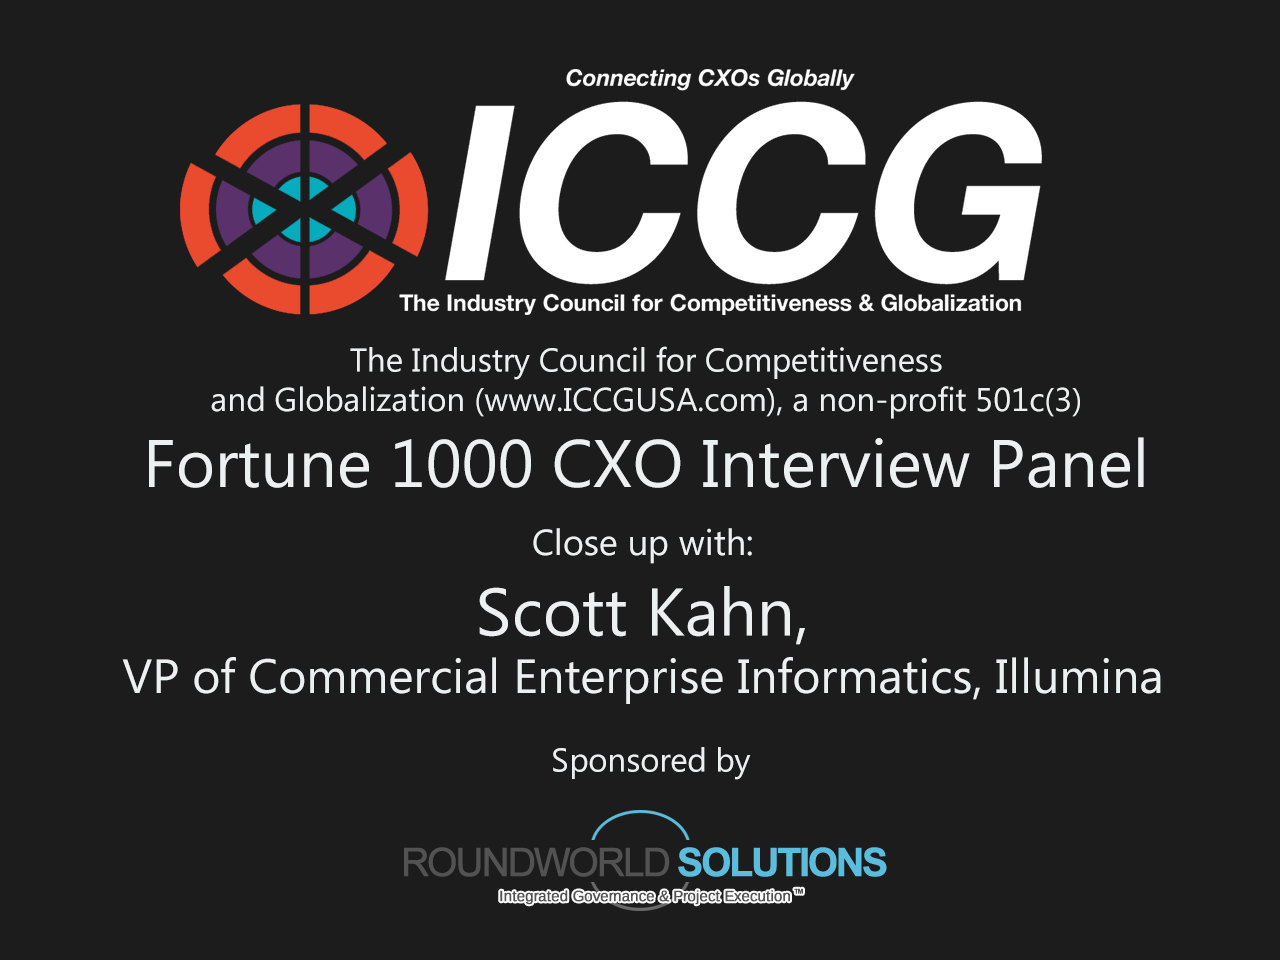 Fortune 1000 CXO Interview Panel: Scott Kahn, Illumina